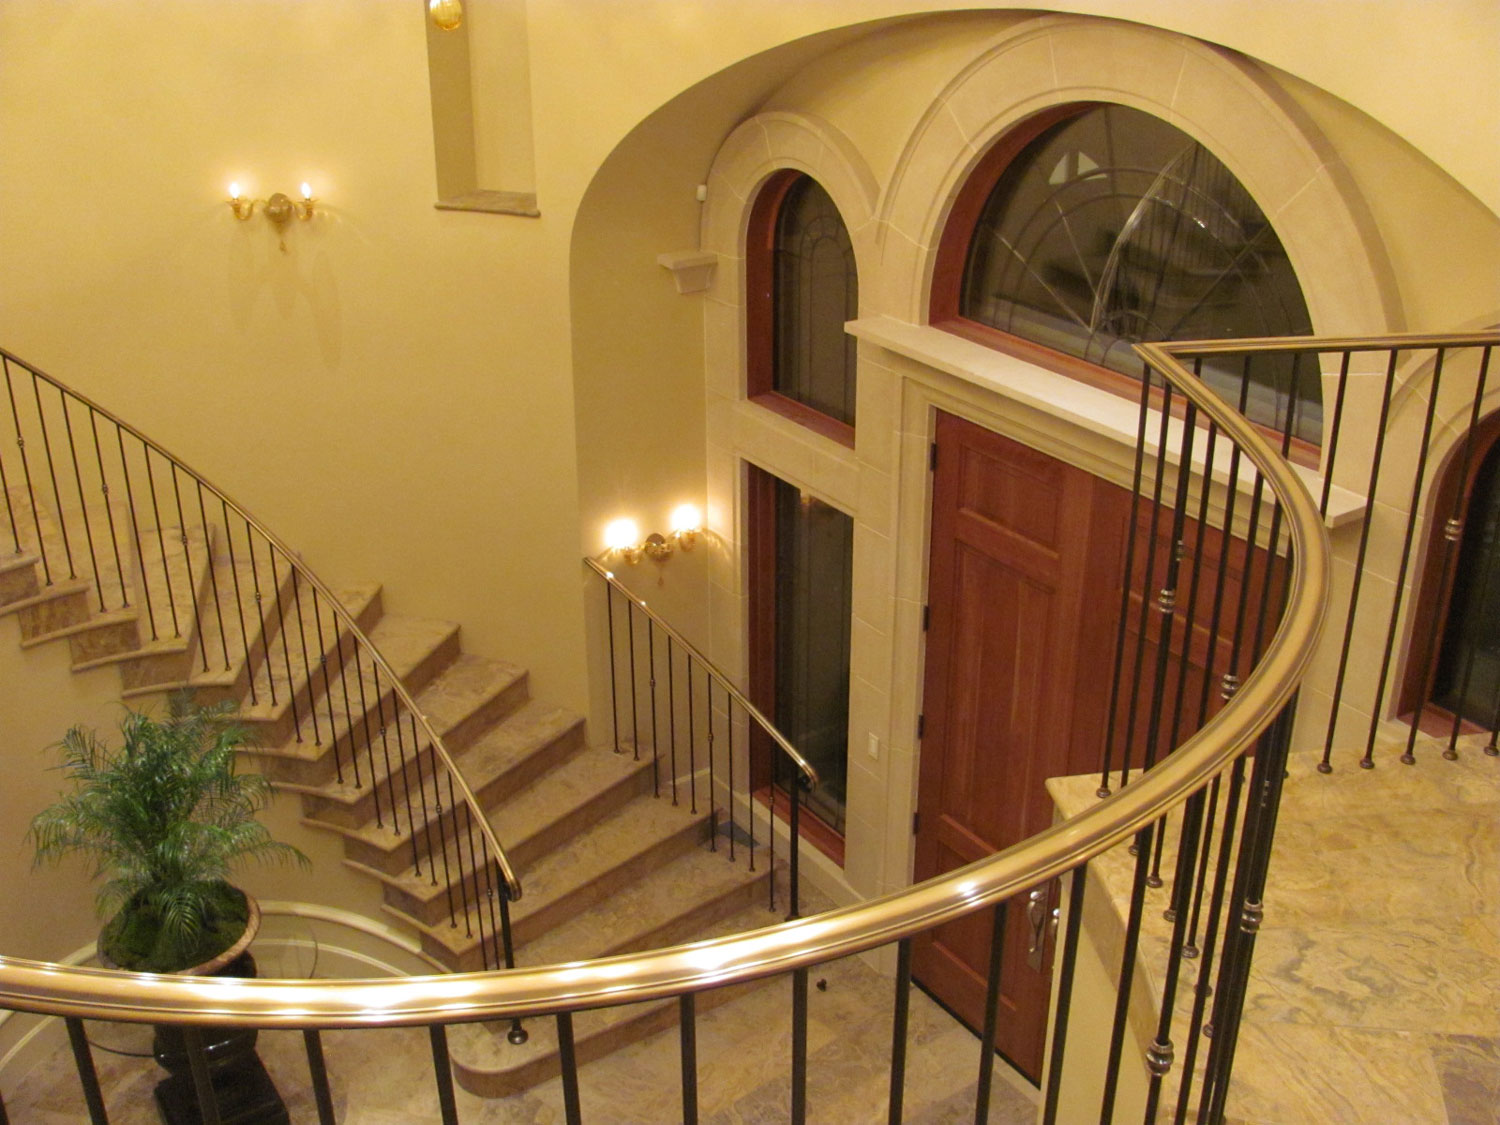 Elegant Pitch and Curved Railing - Overhead of Entranceway - Seattle, WA